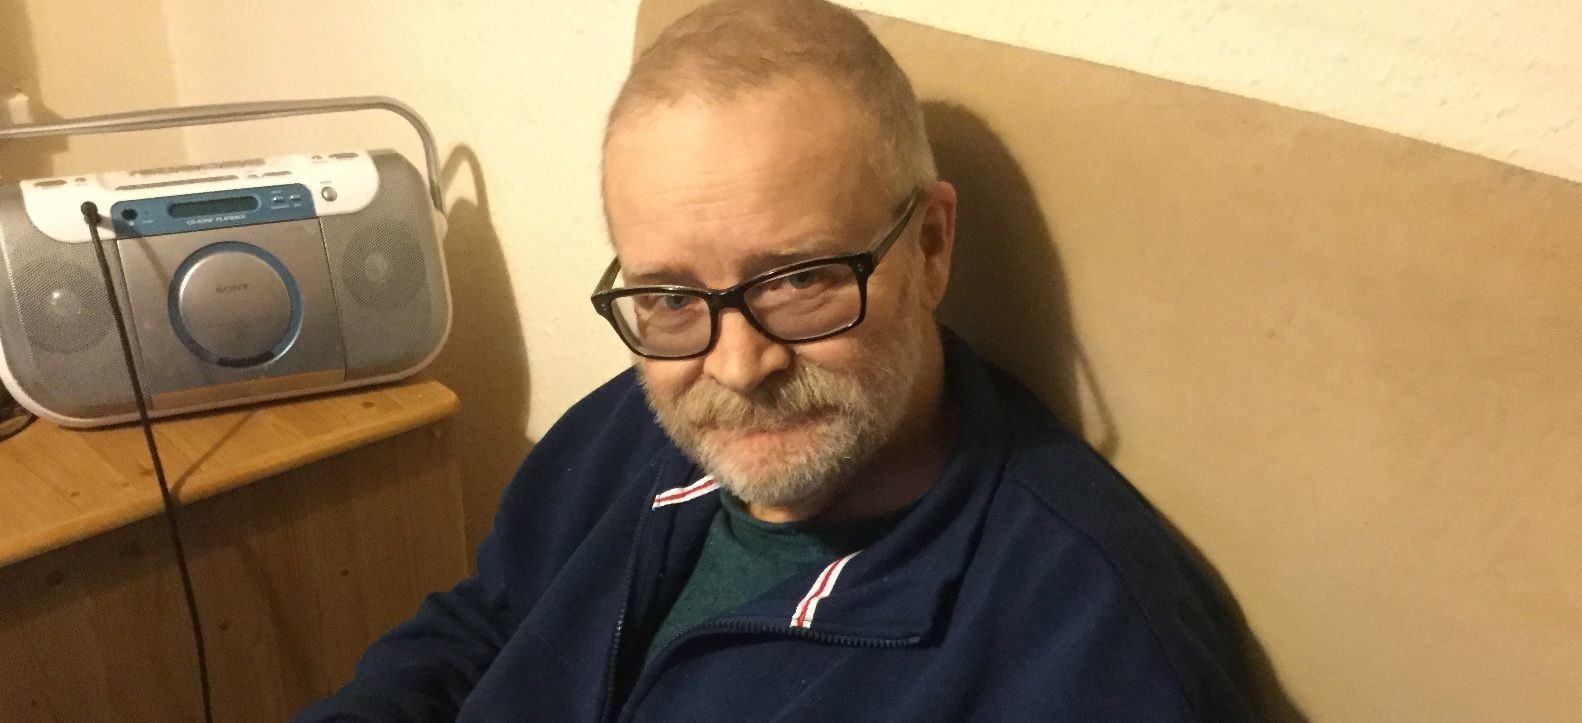 Care home at centre of Legionnaire's disease death agrees settlement with family